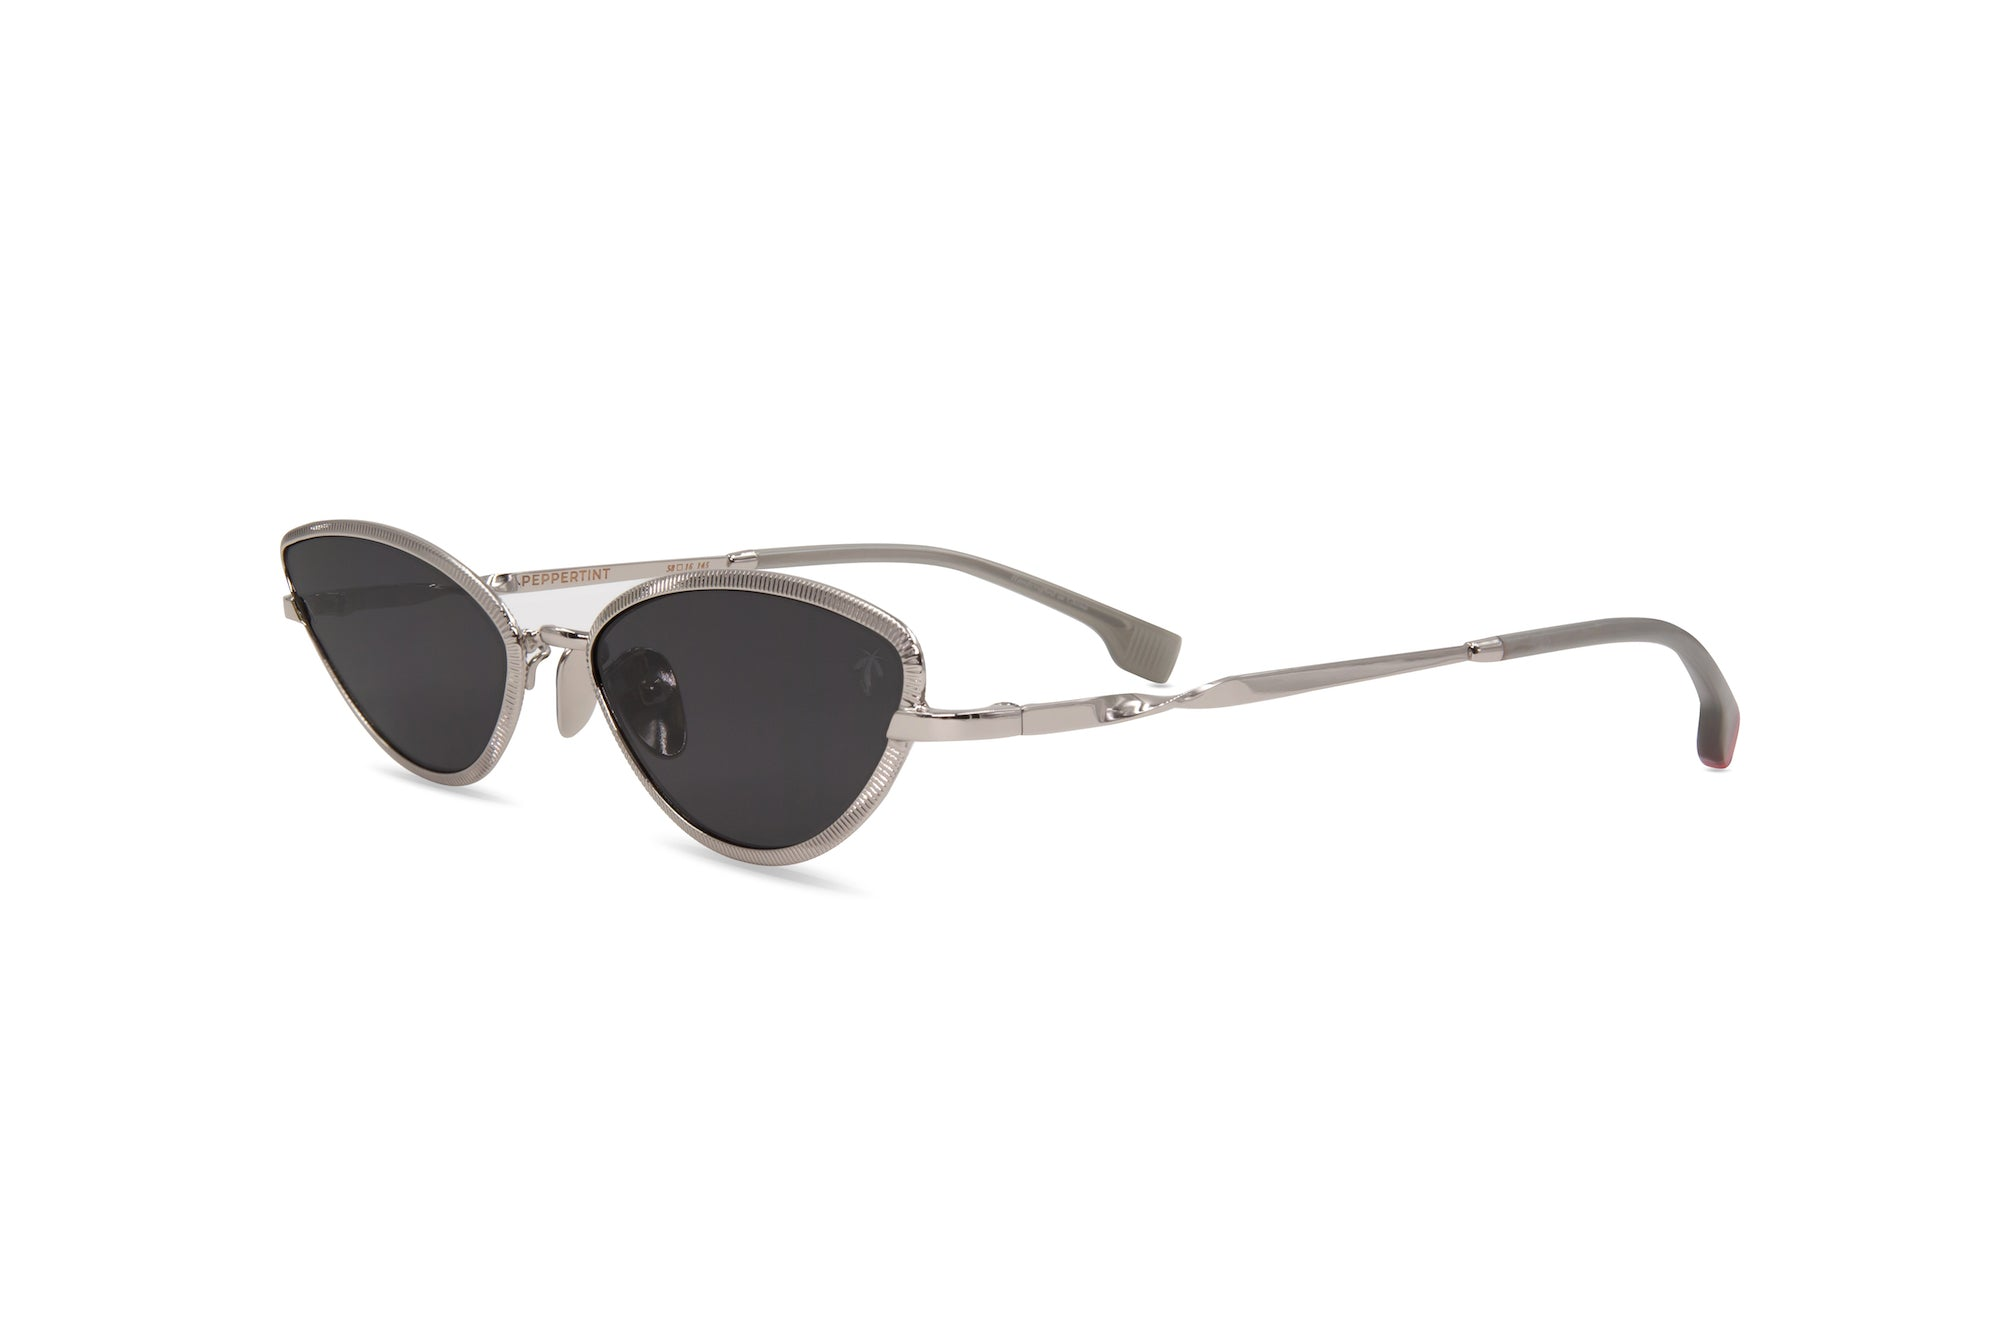 Alameda in Black (Special Edition) - Peppertint - Designer sunglasses